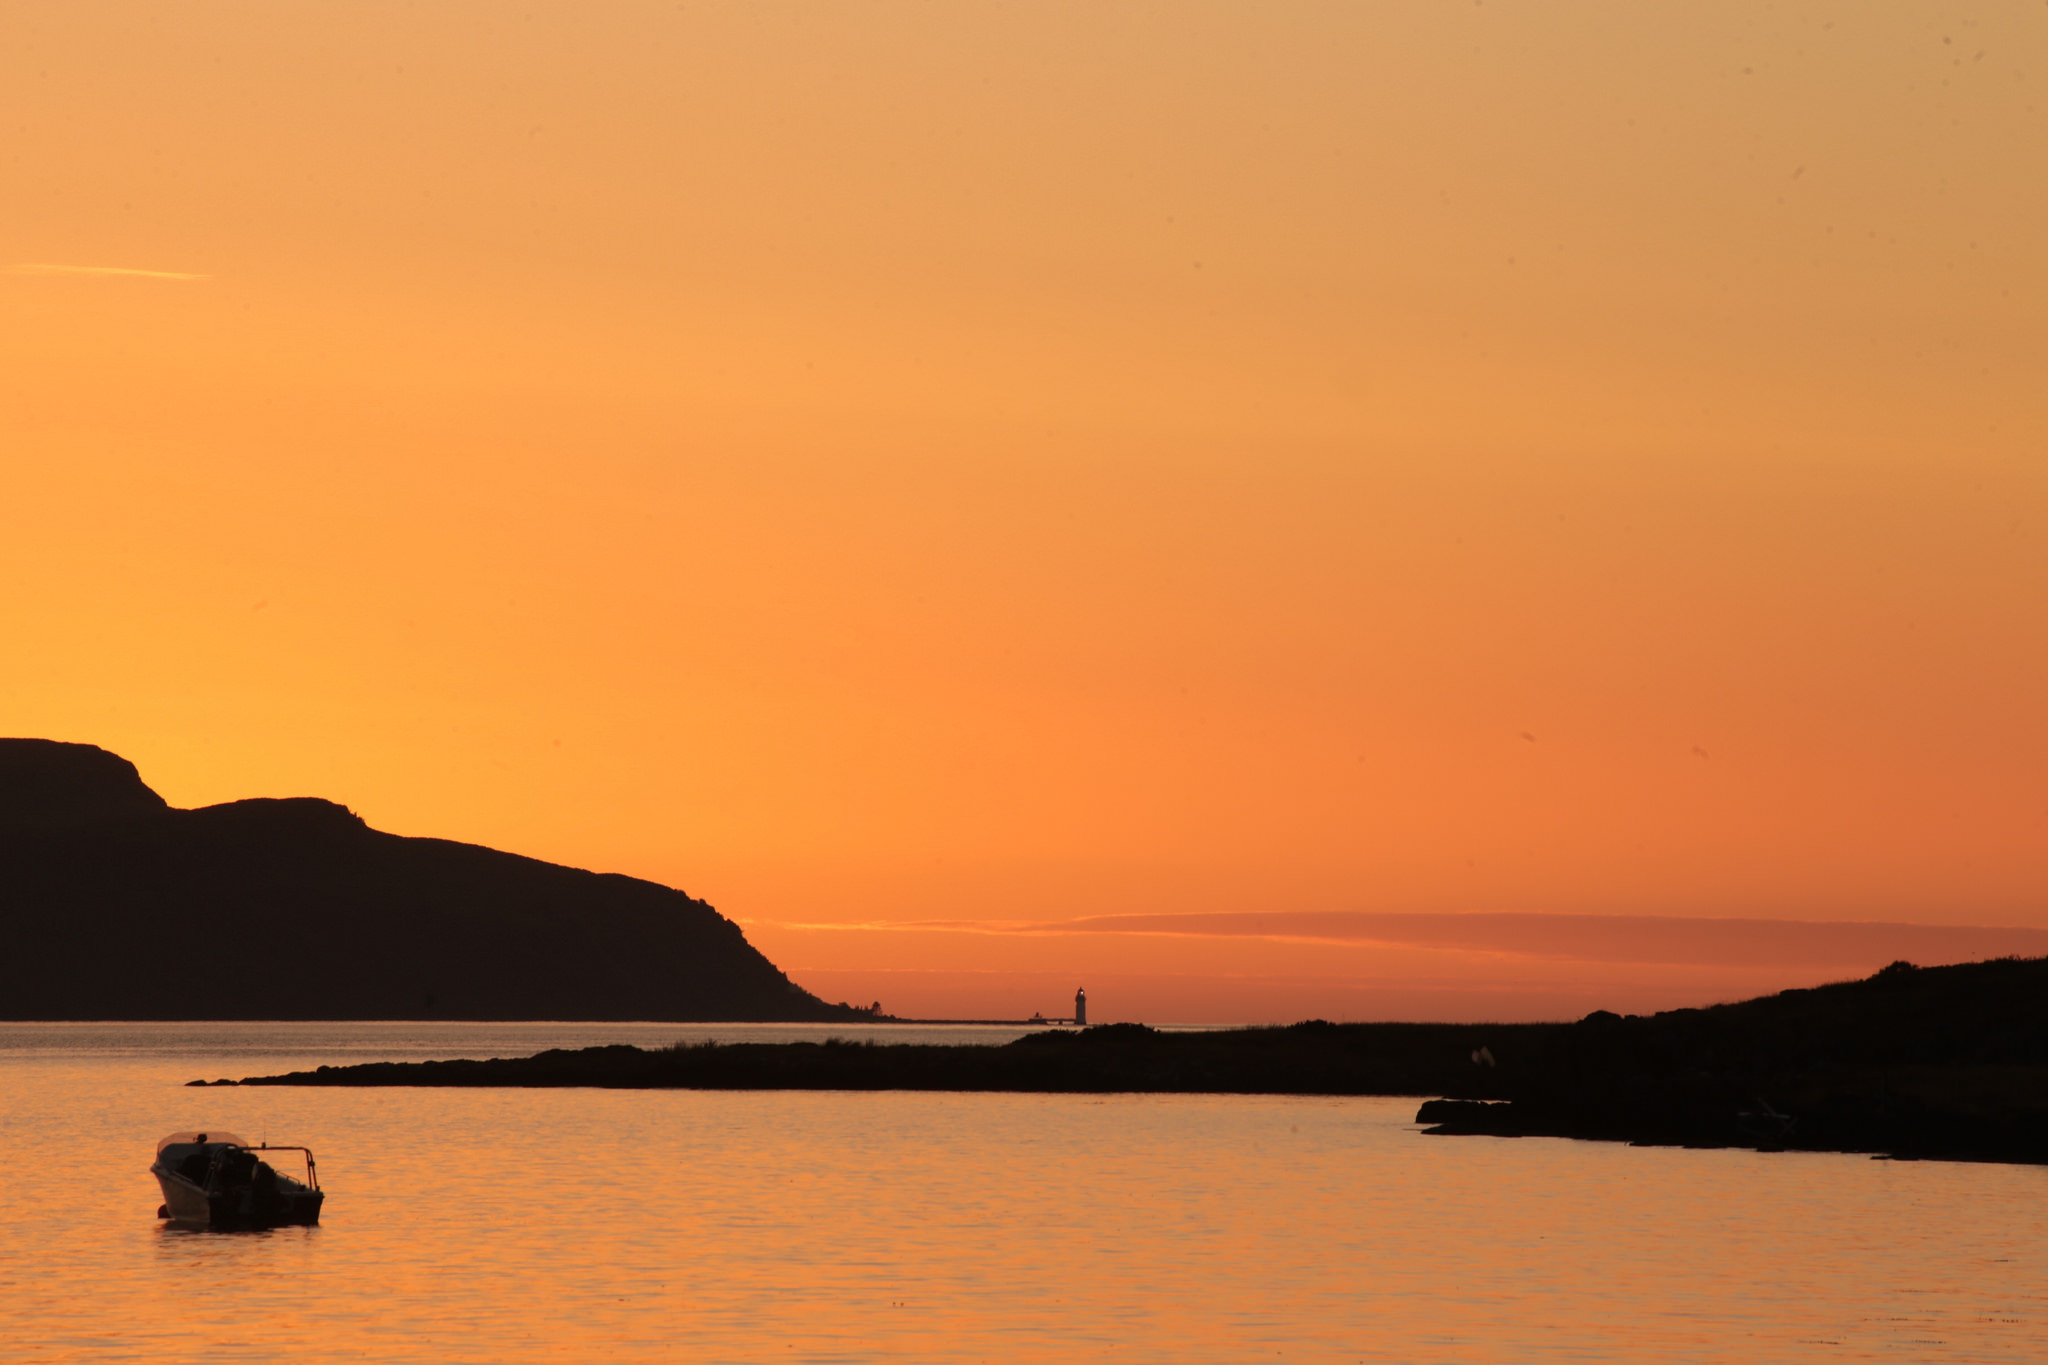 Looking towards Tobermory from Morvern Peninsula at sunset. Picture by Henry Hemming CC By 2.0